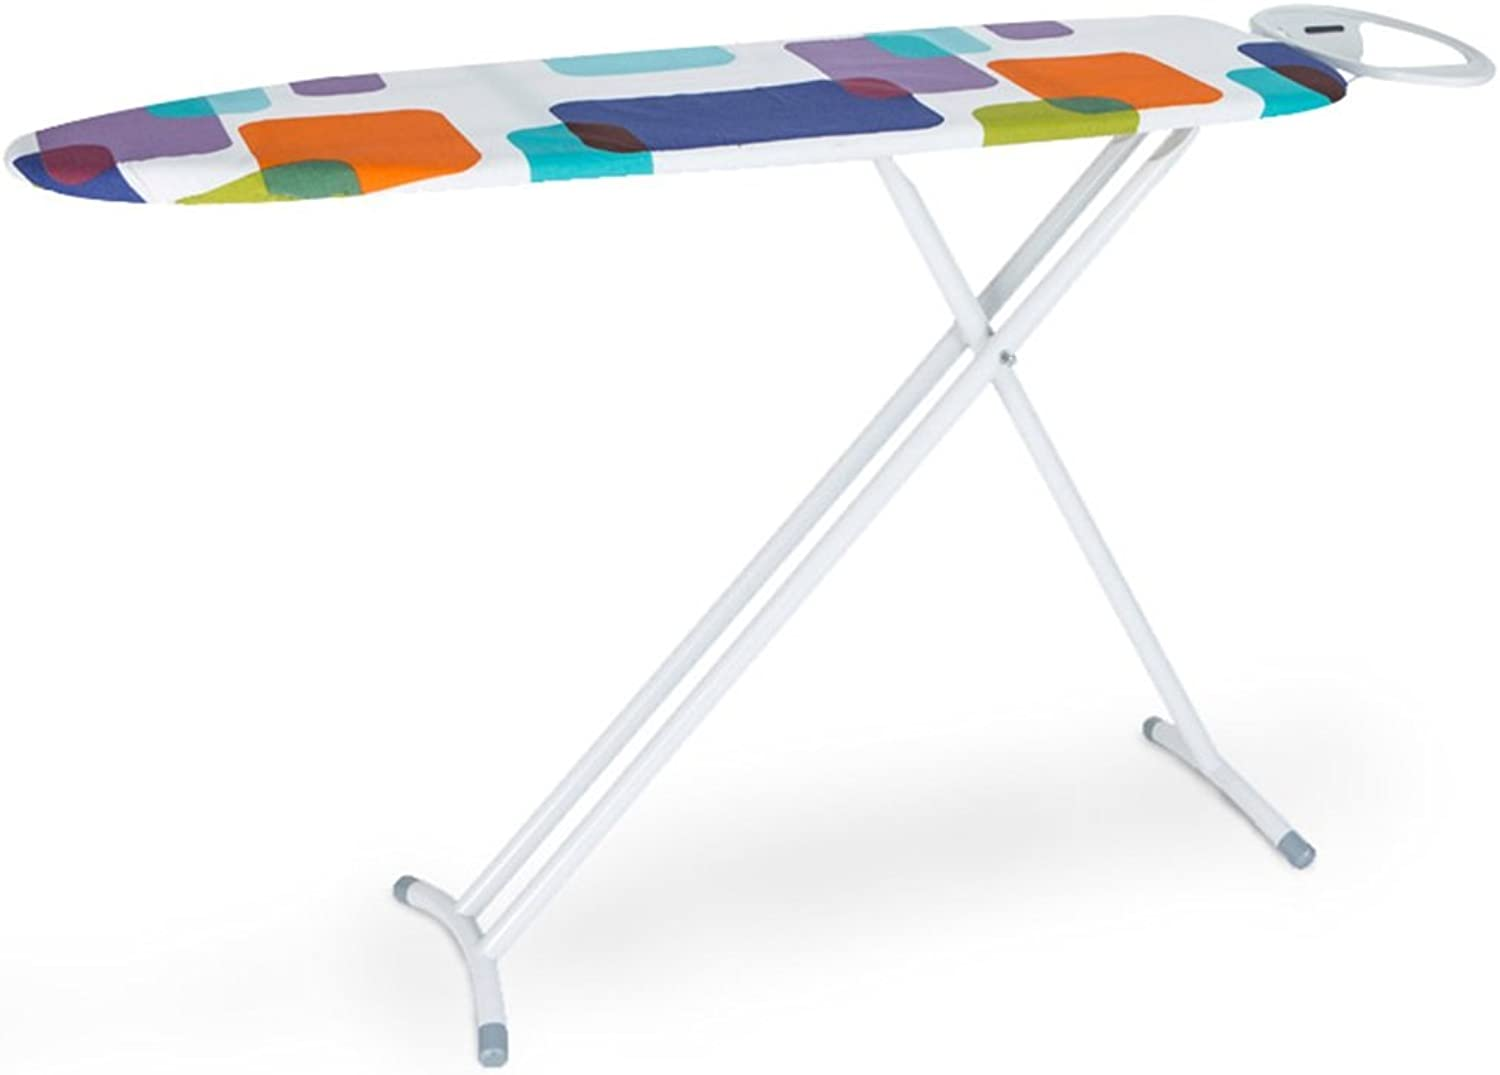 Folding Table- Foldable greenical Ironing Board Ironing Table Reinforcement Large Easy and Convenient Multi-color Optional Wall-Mounted Table (color    1)